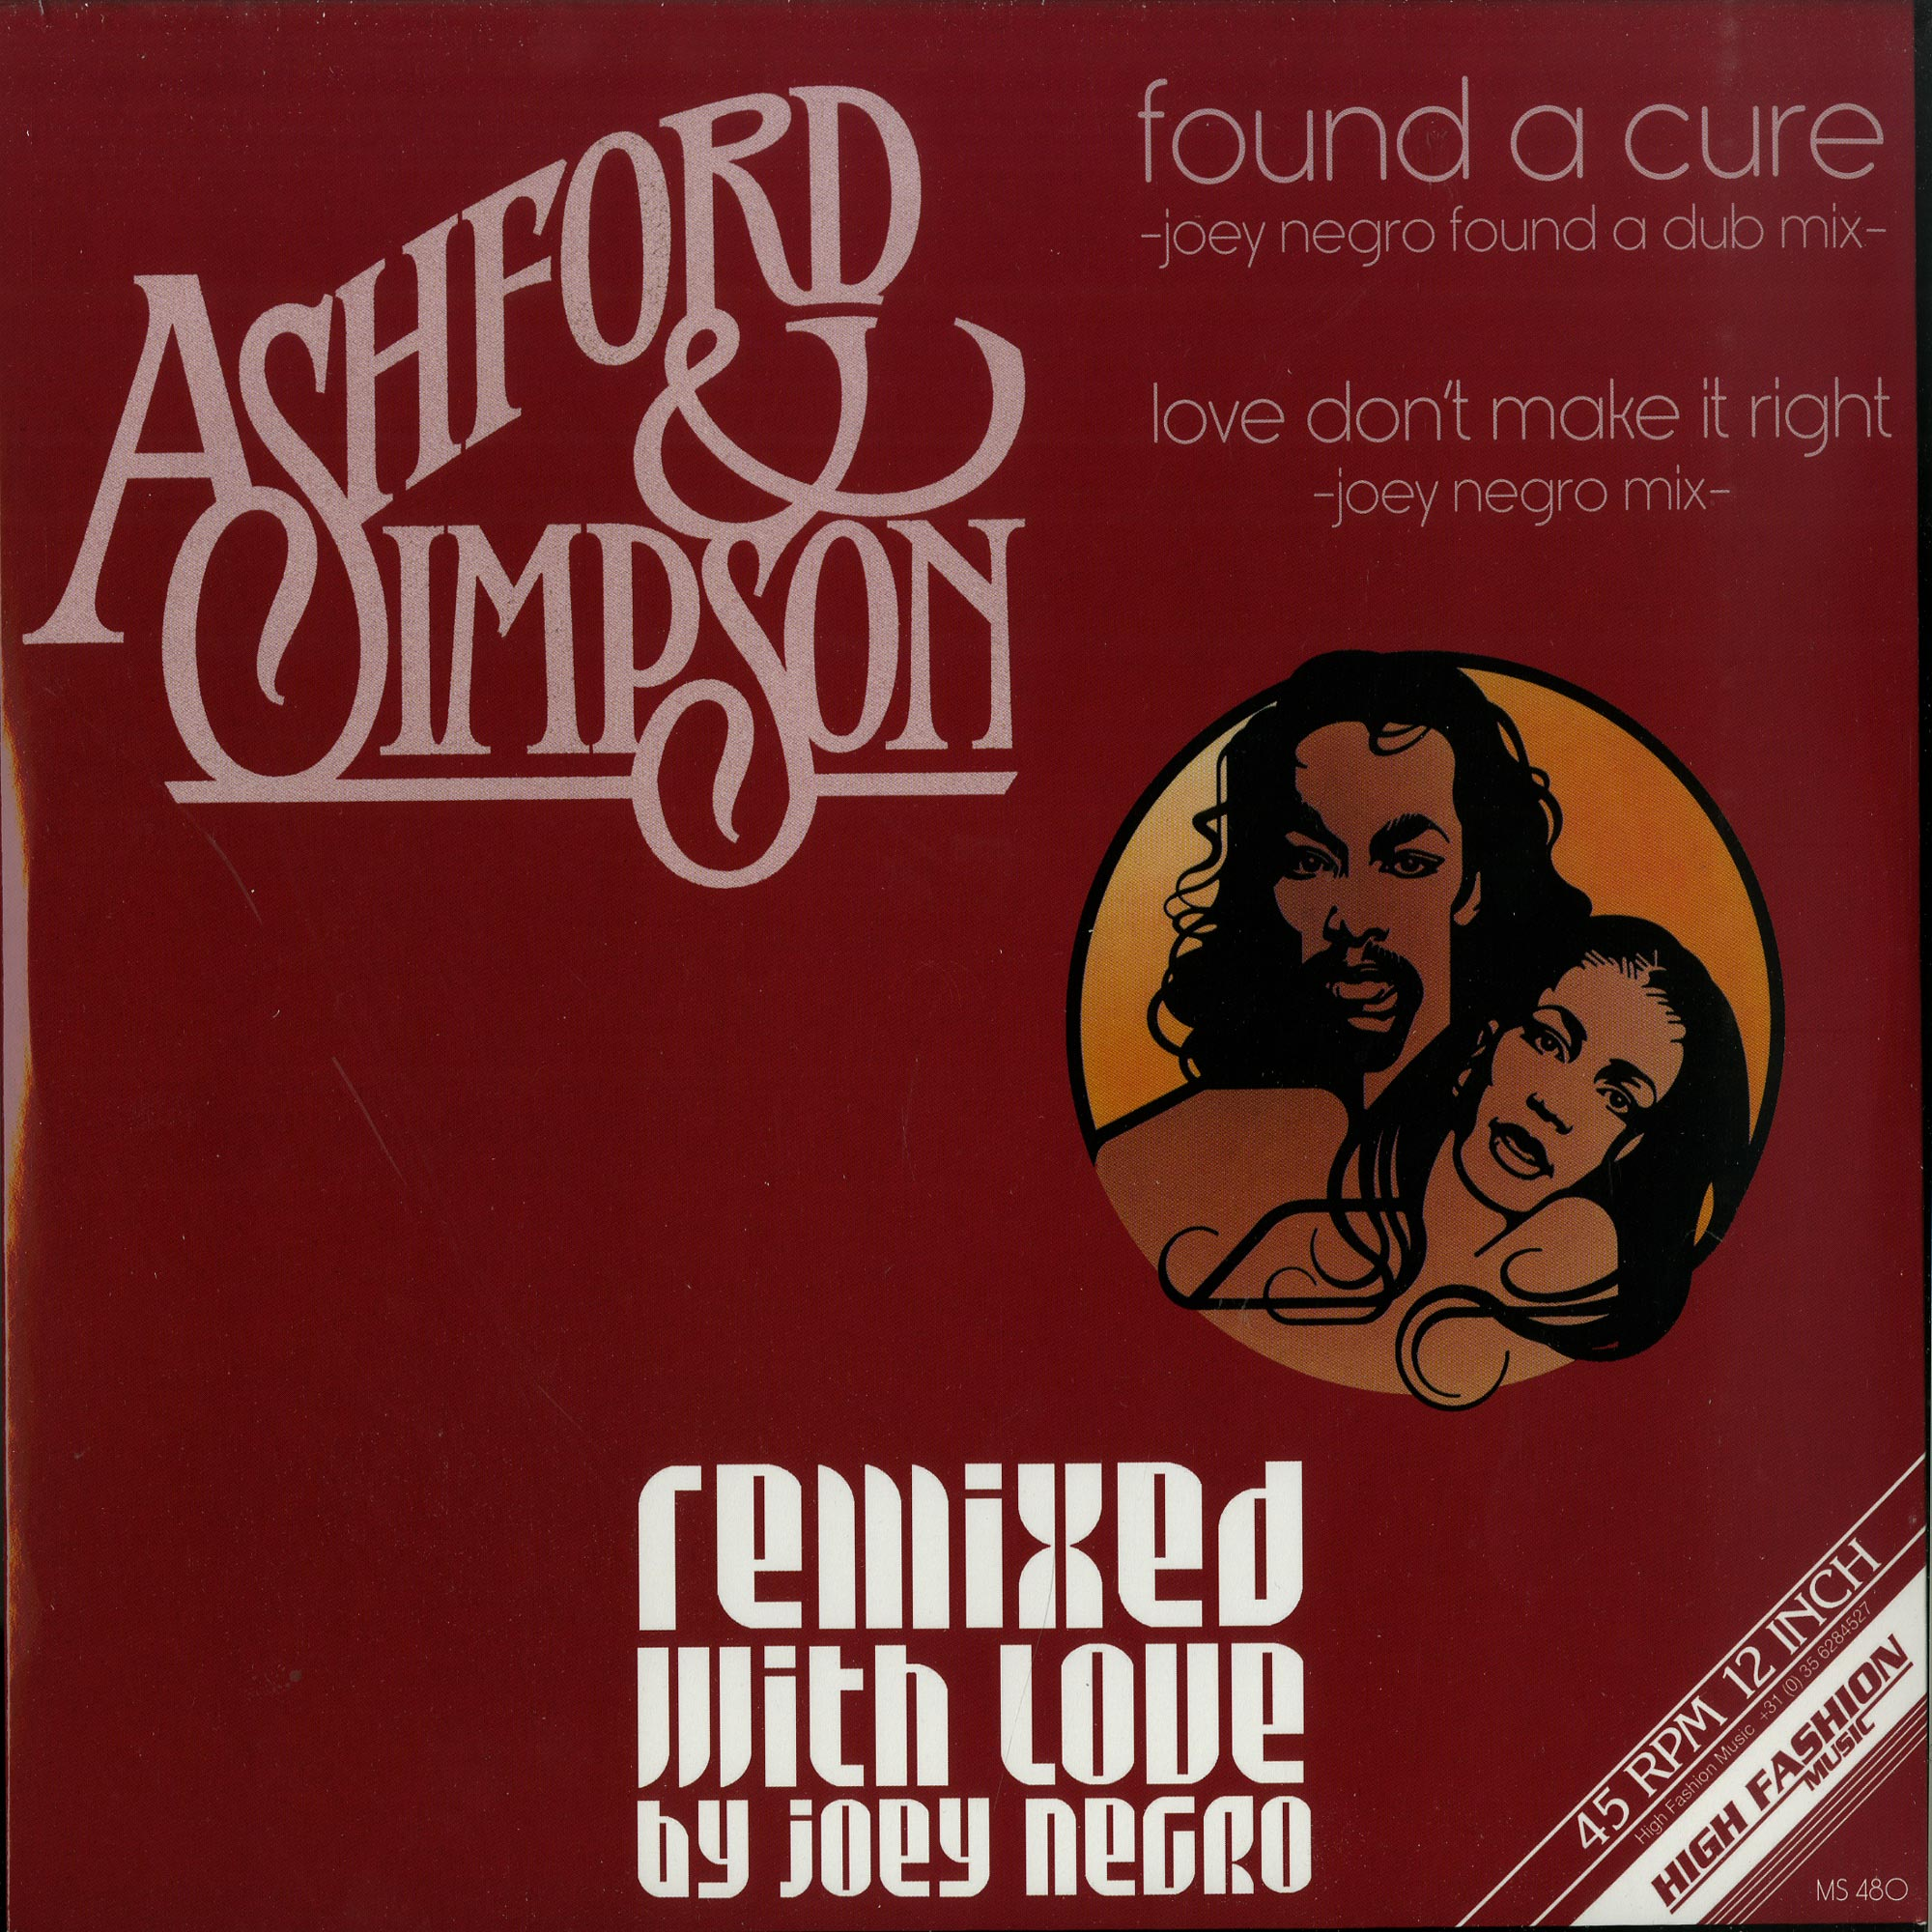 Ashford & Simpson - FOUND A CURE / LOVE DONT MAKE IT RIGHT